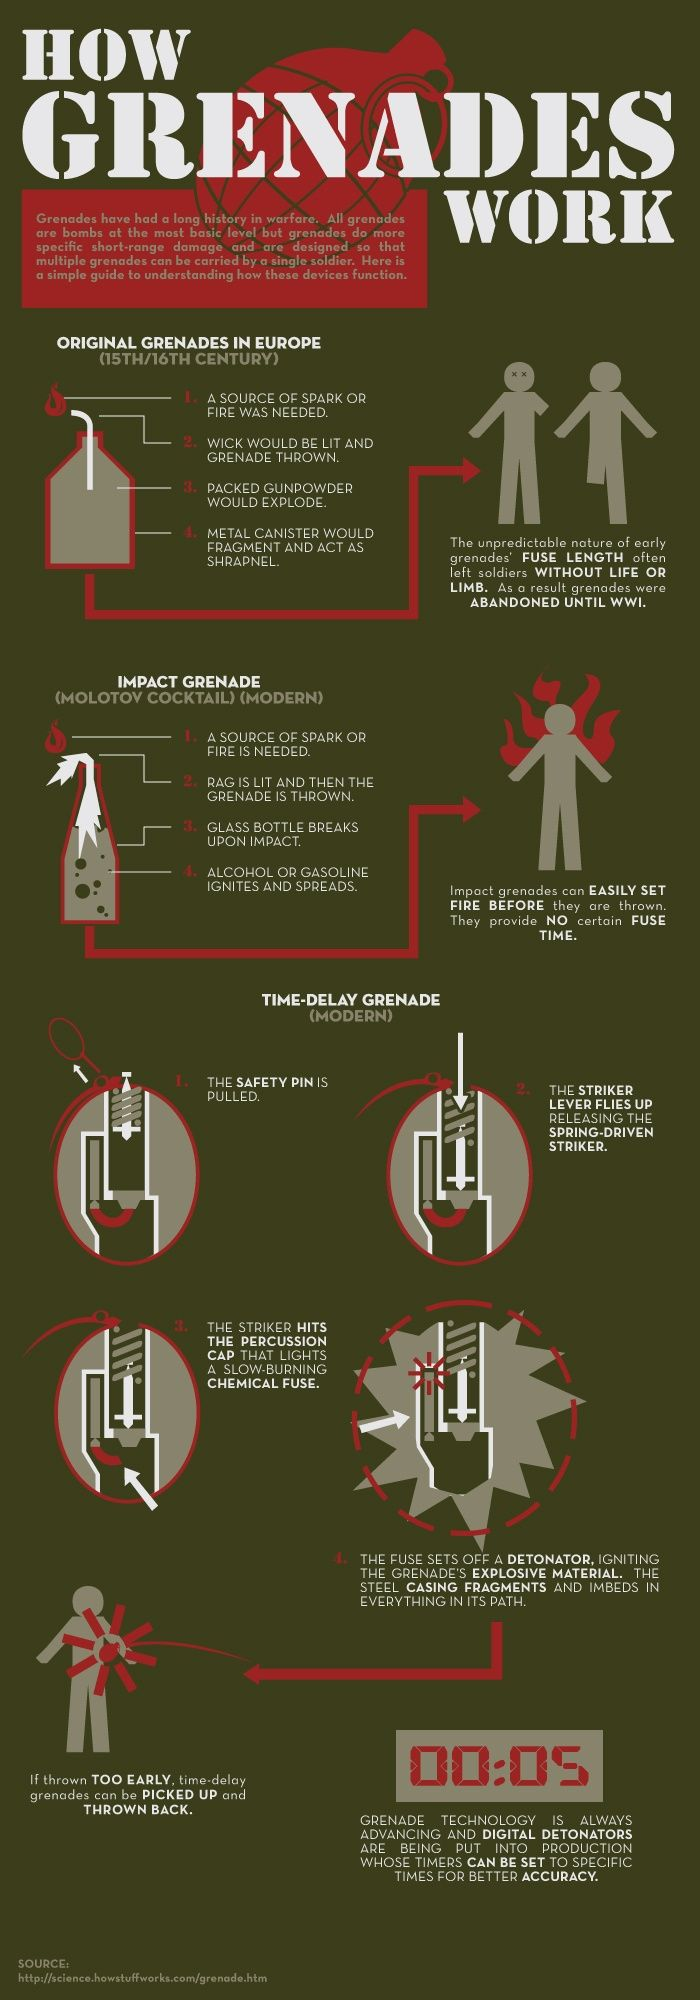 InfoGraphic - How Grenades Work